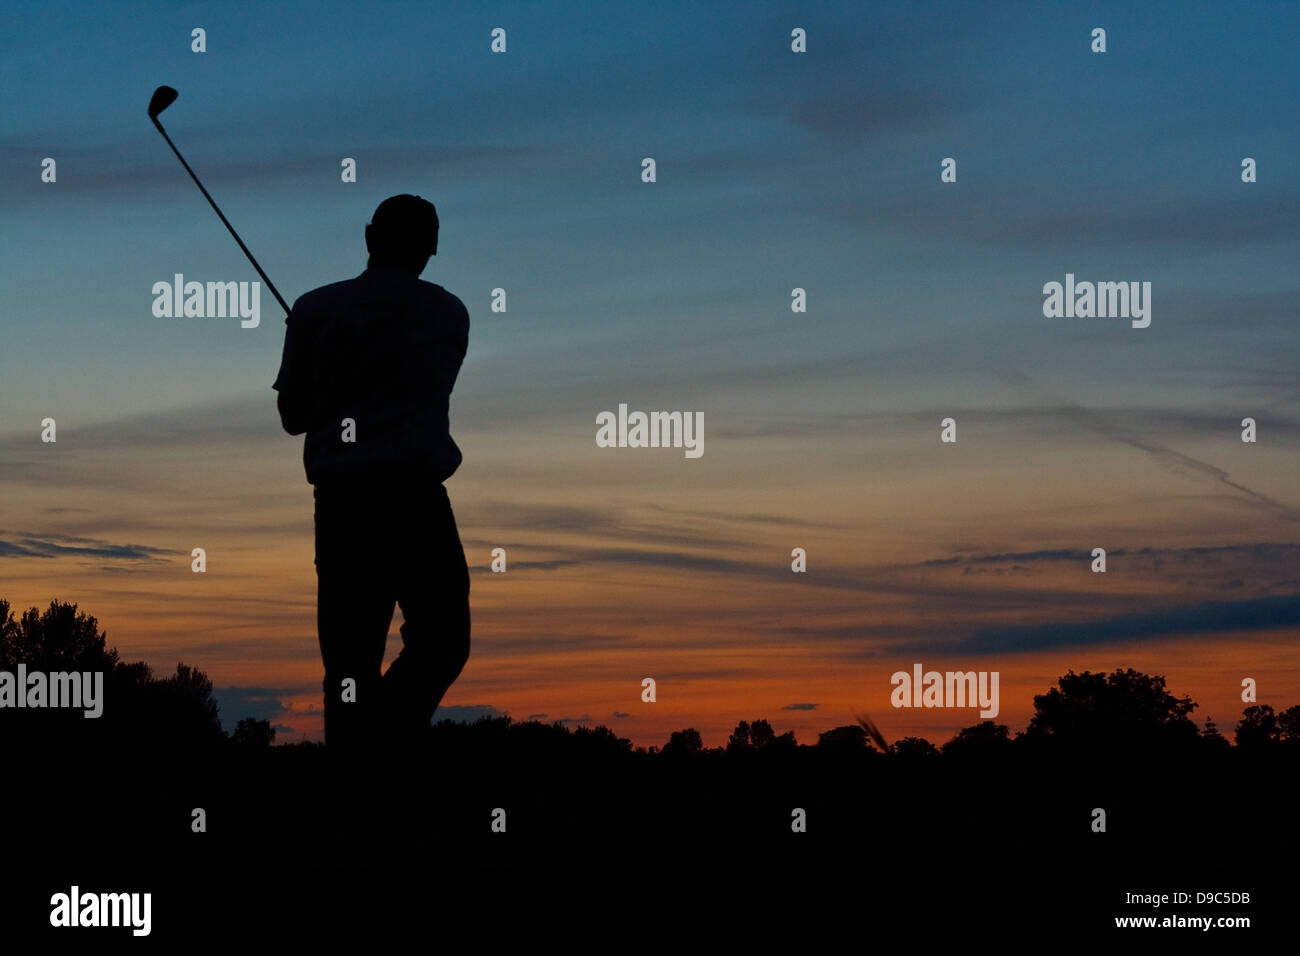 Silhouette of a lone golfer finishing a game of golf at dusk - Stock Image